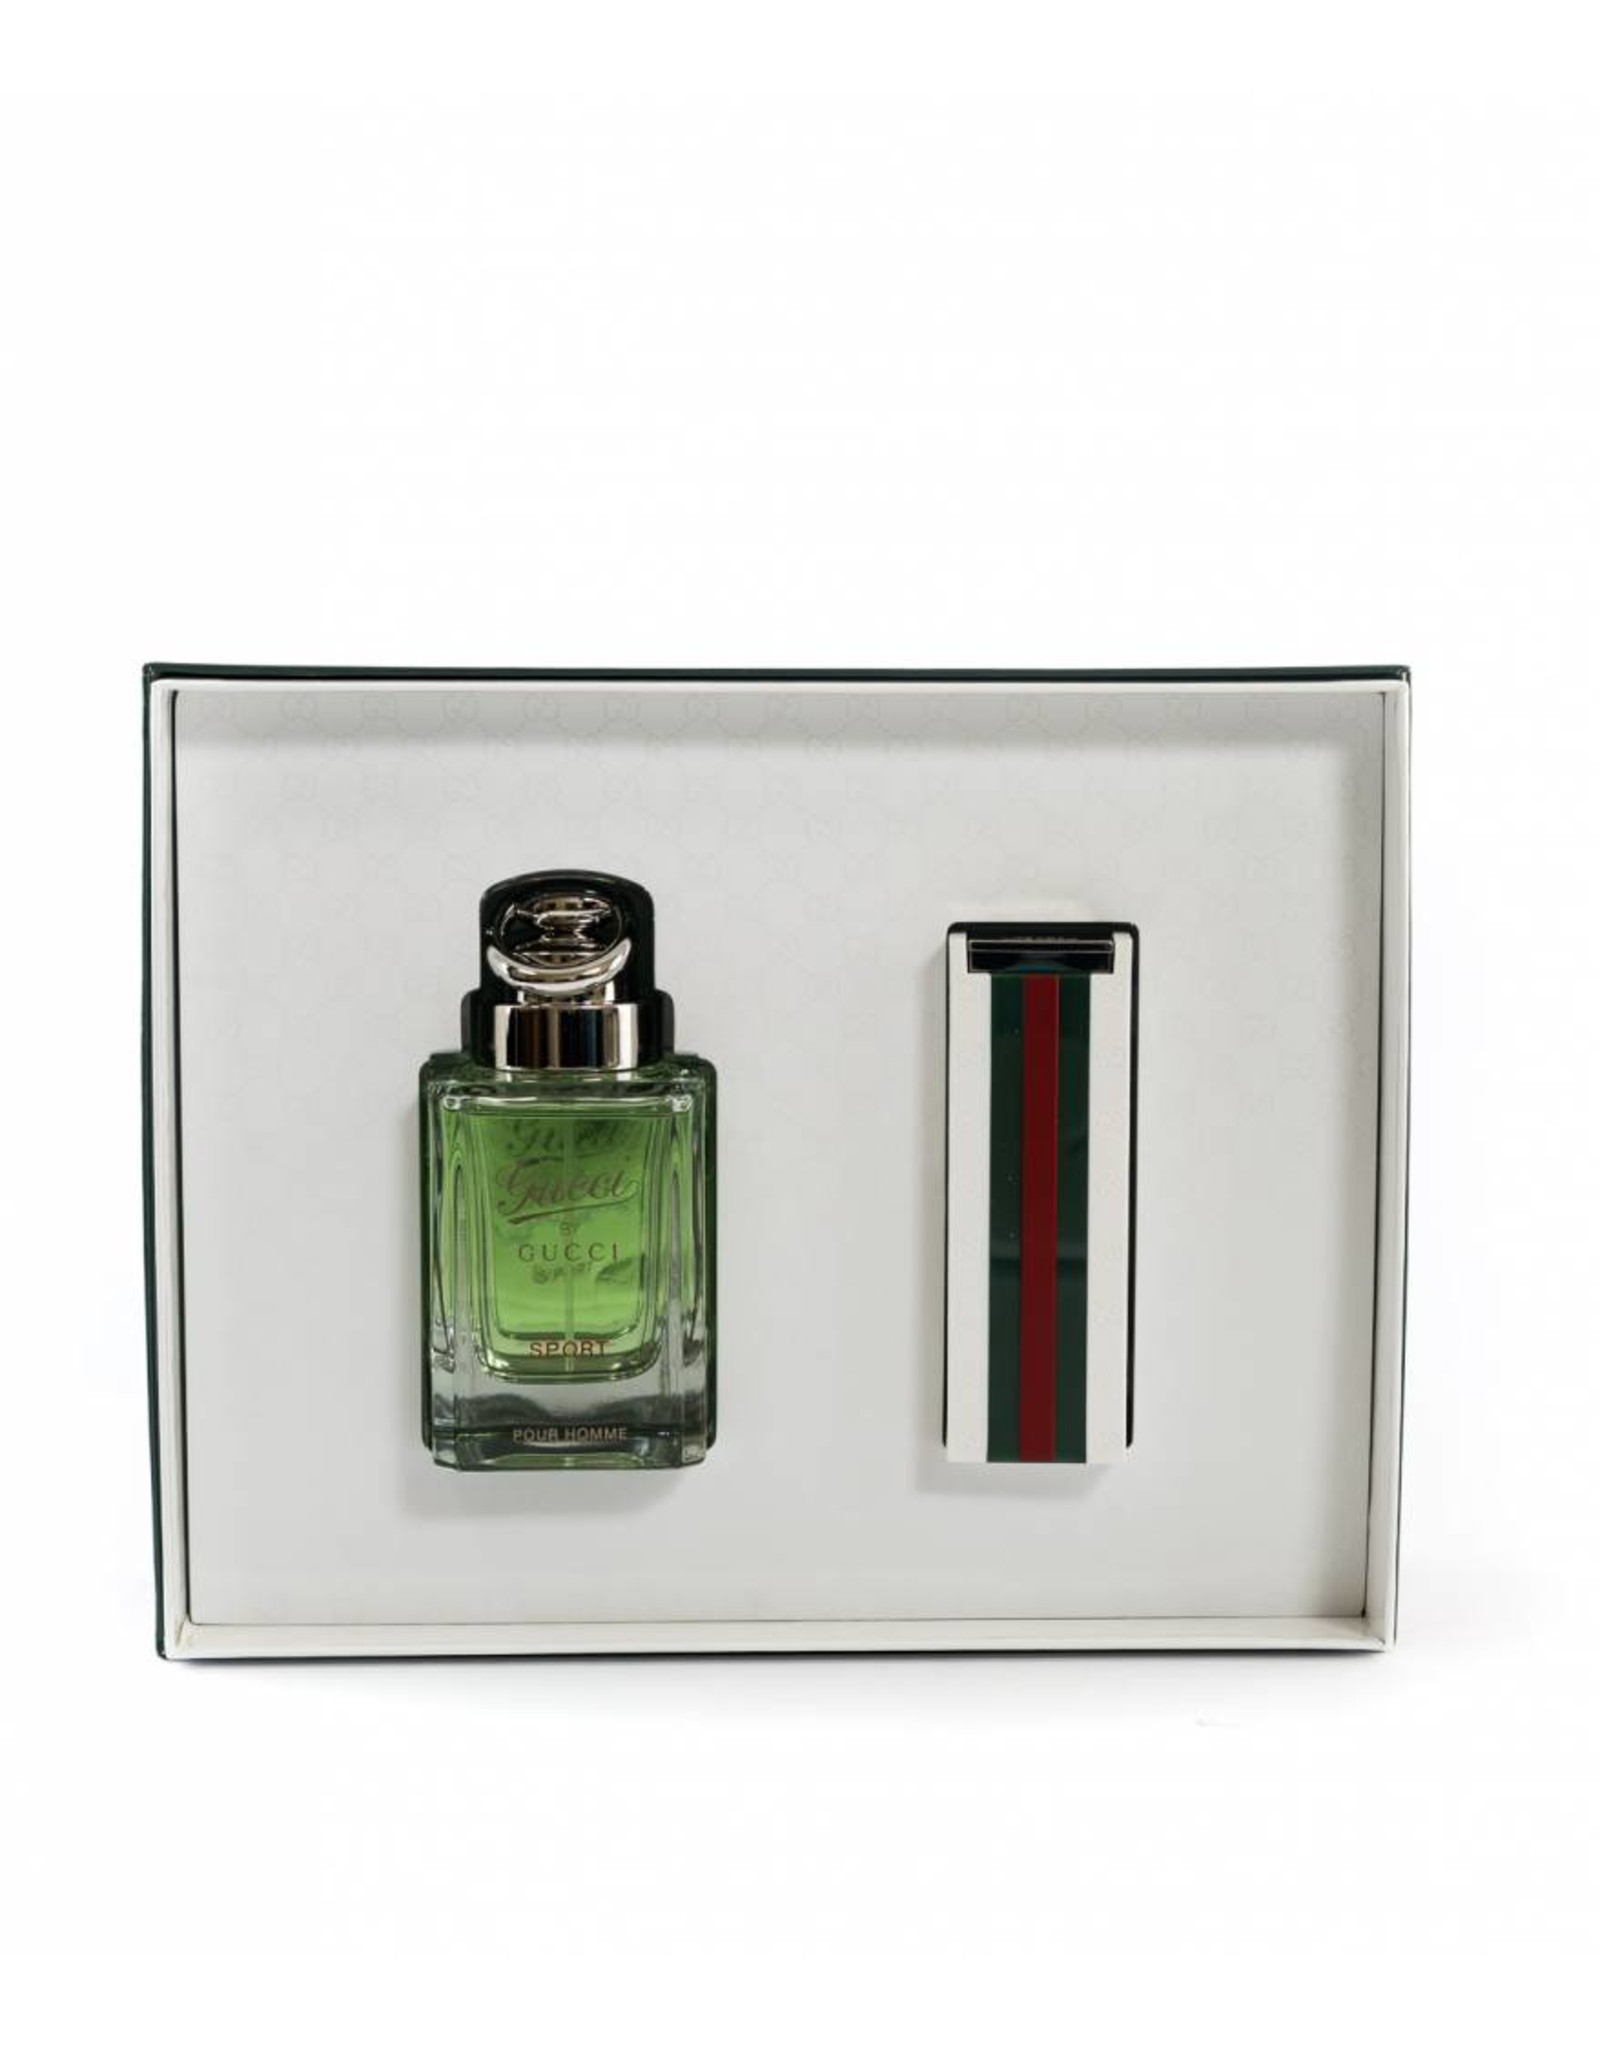 GUCCI GUCCI BY GUCCI SPORT POUR HOMME 2pcs Set